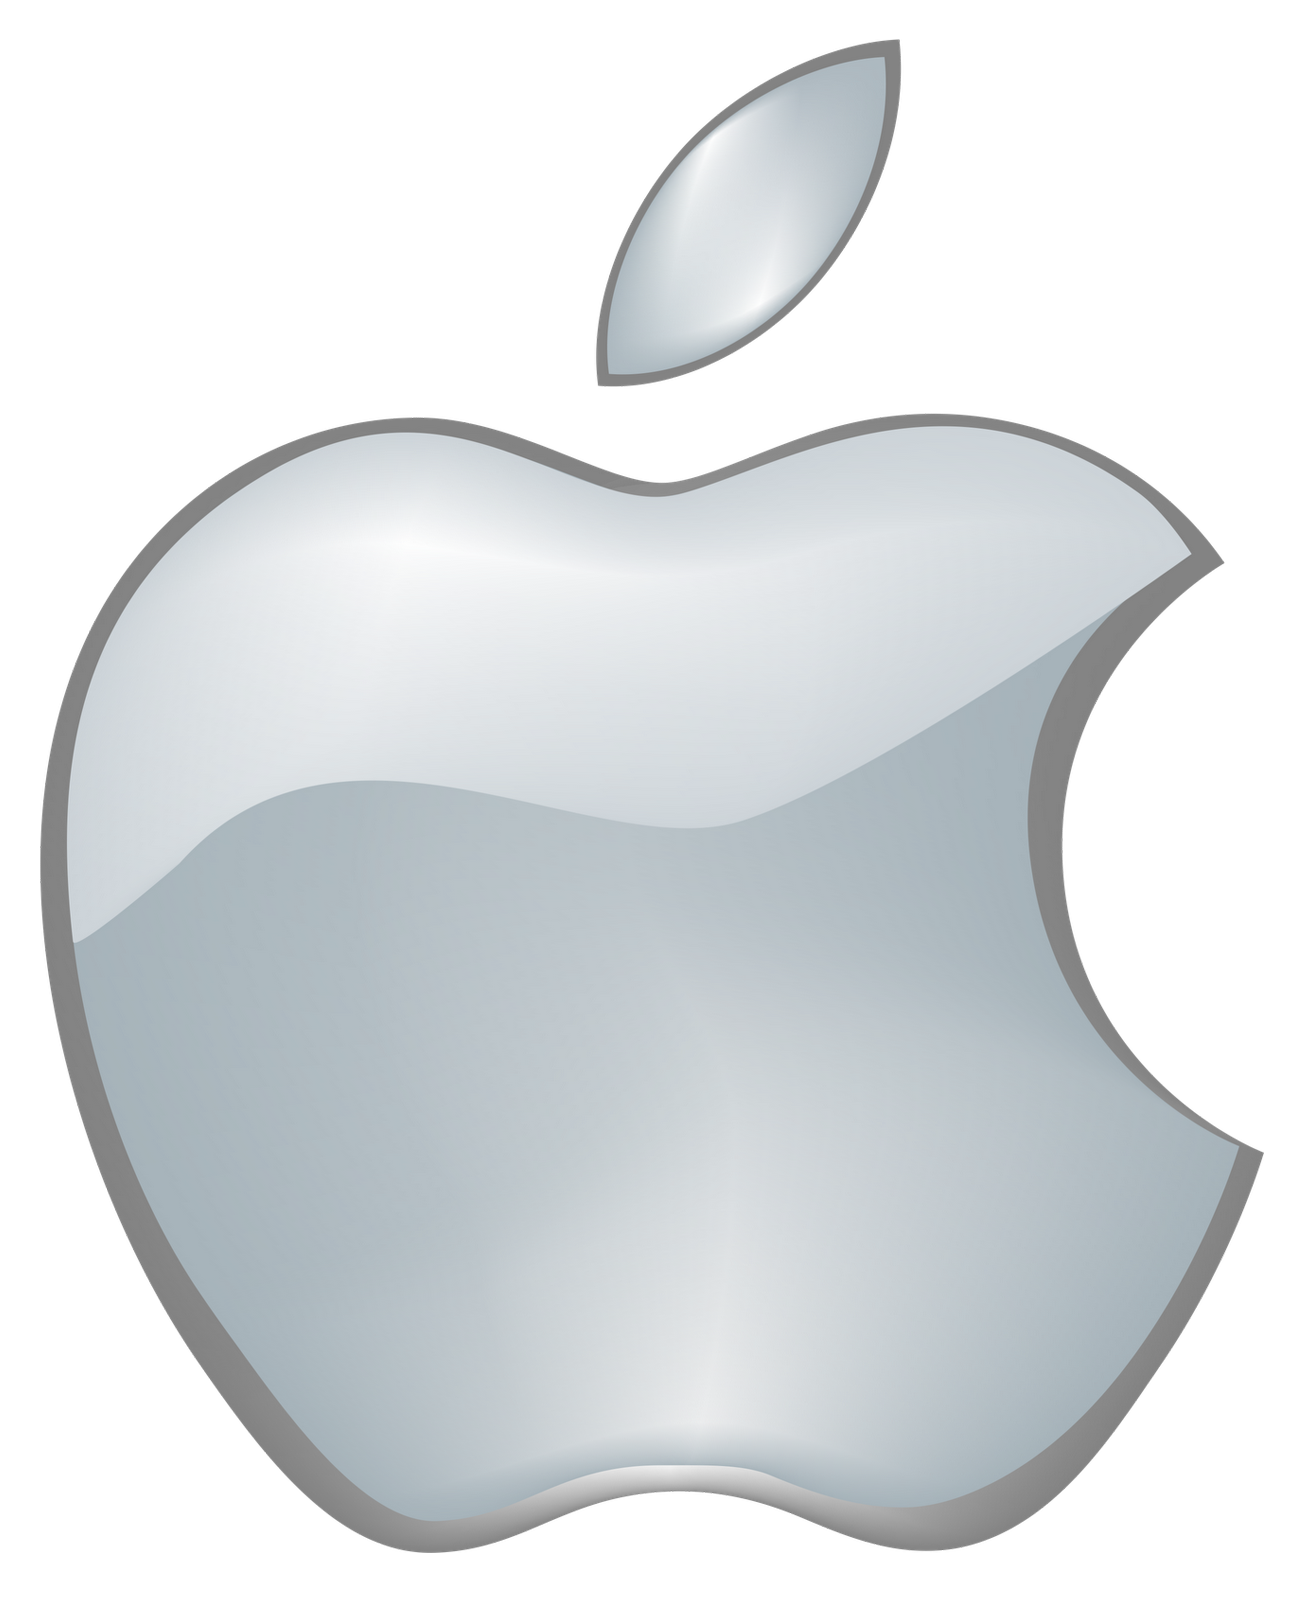 Apple logo PNG images free download.